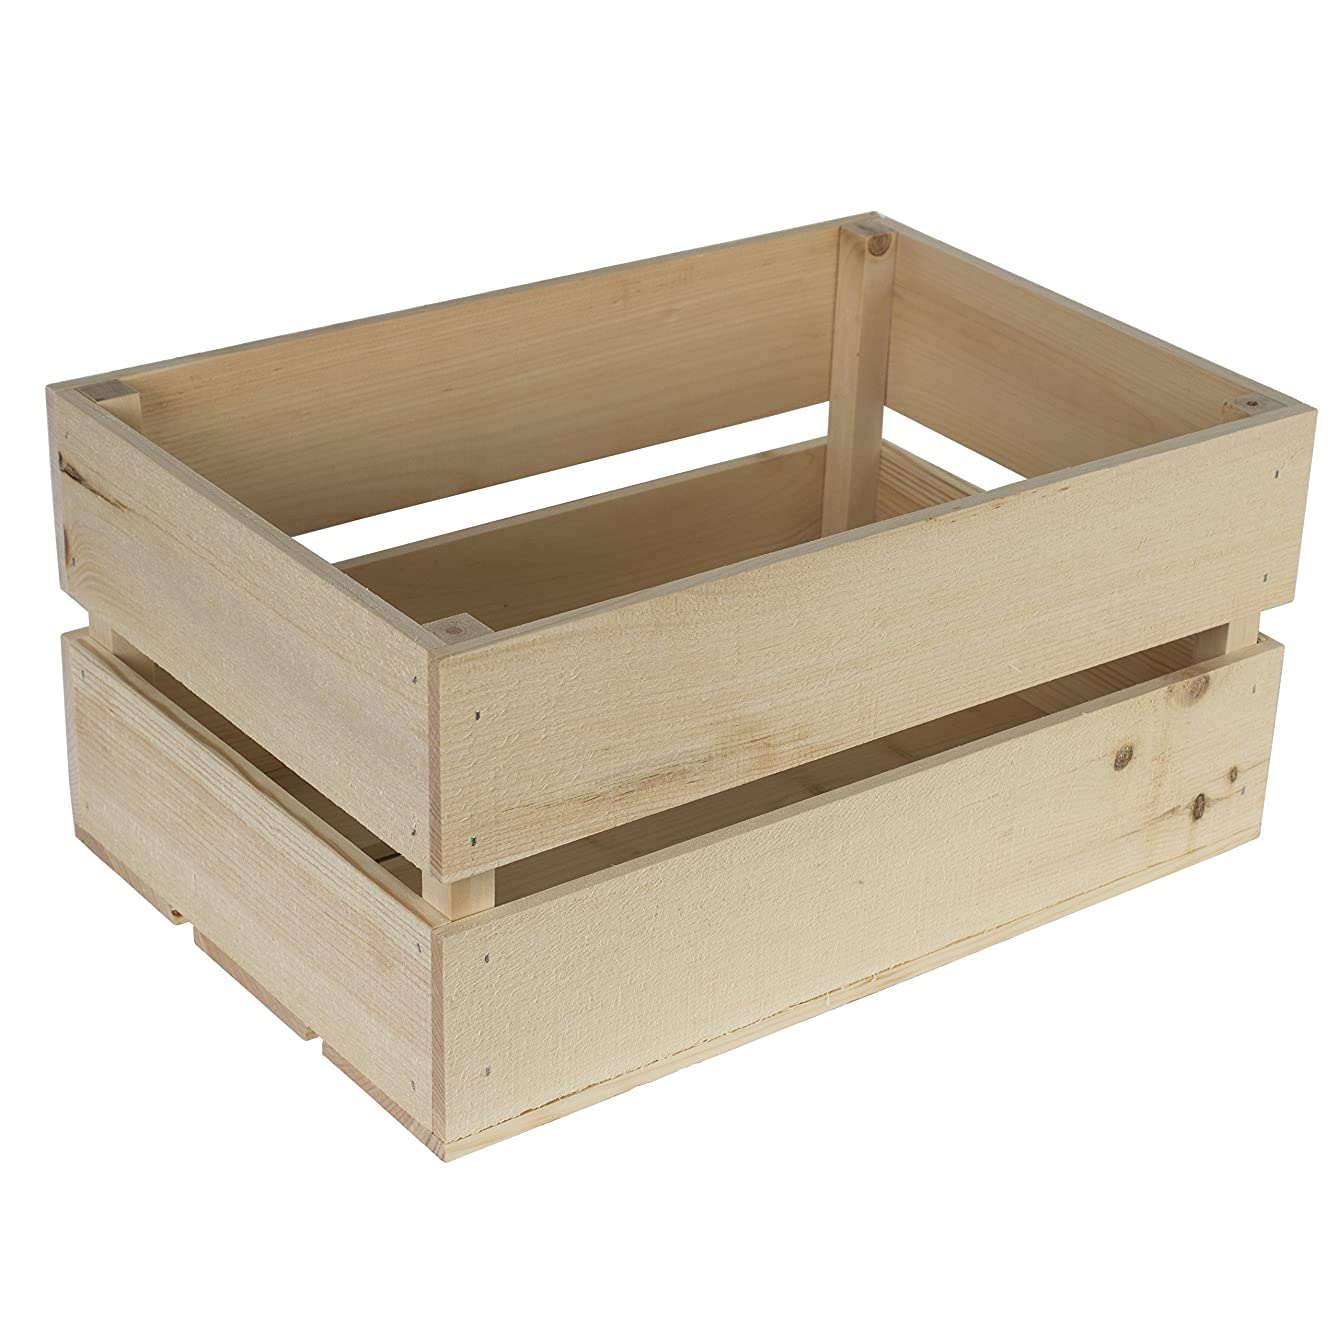 Walnut Hollow Rustic Wood Crate DIY Home Décor Accent Project, 17.25-inches x 11.63-inches x 8.25-inches